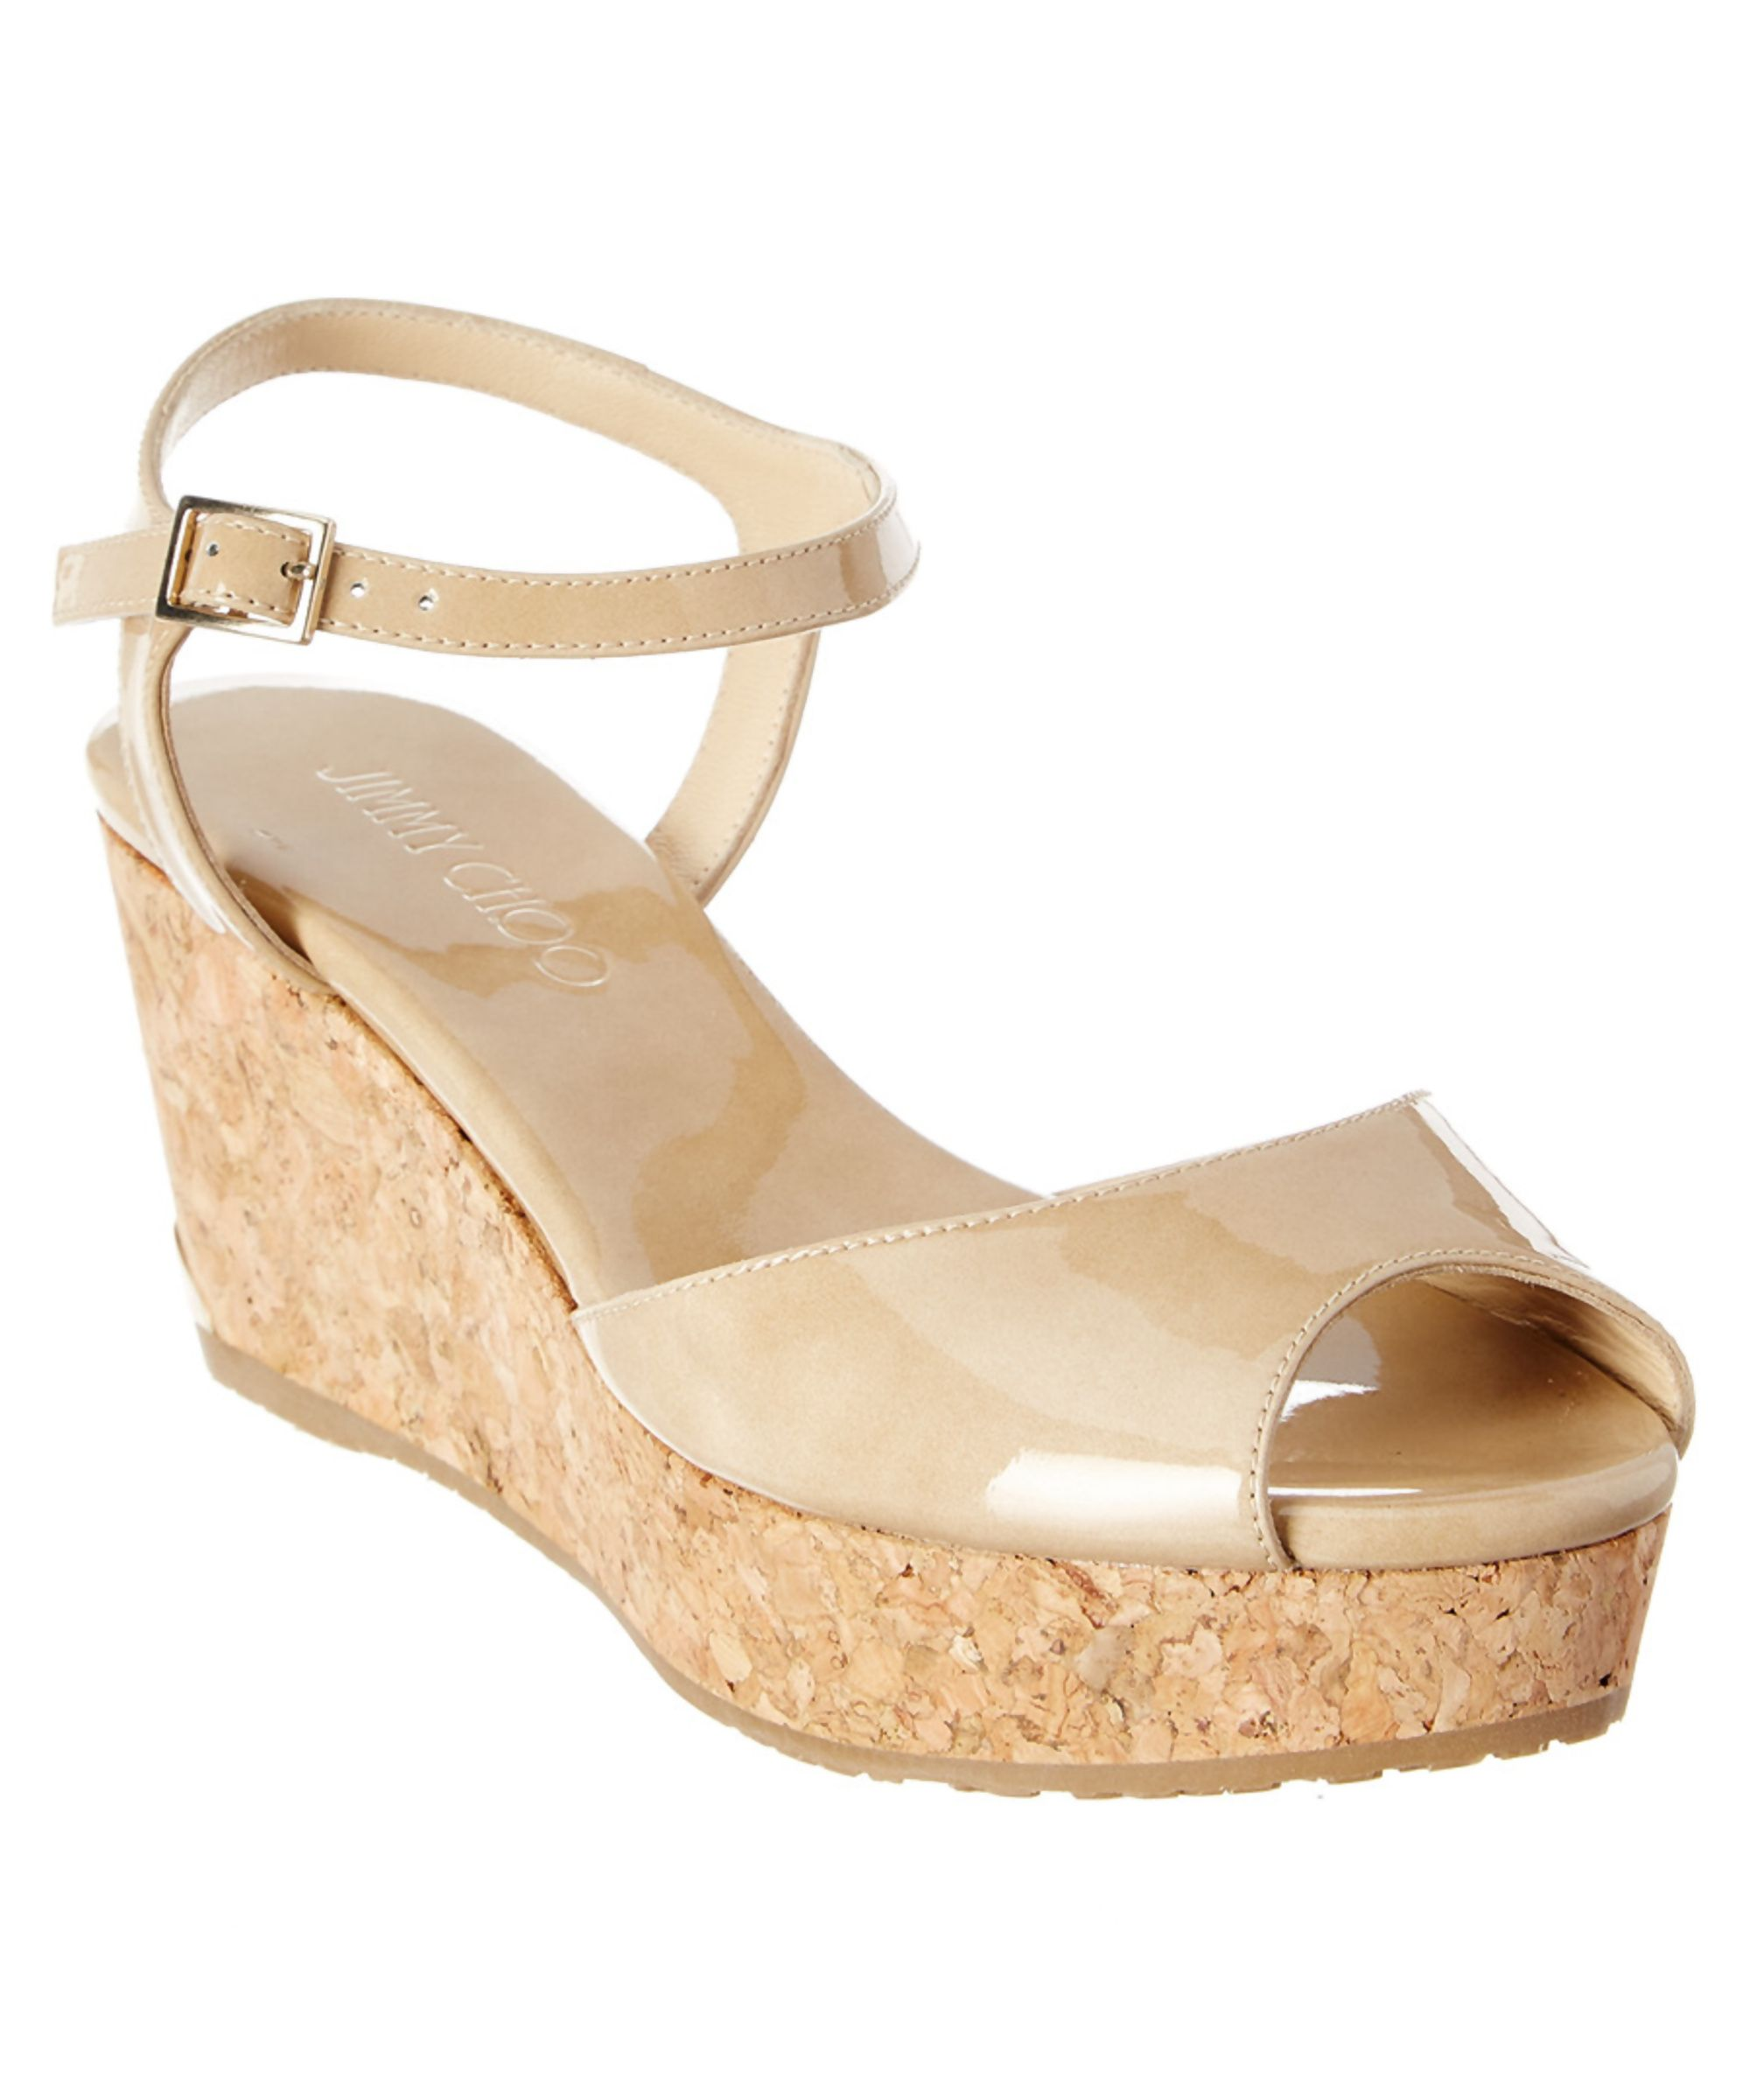 Jimmy Choo Perla 70 wedge sandals discount visit new very cheap online outlet nicekicks discount shop for dXUIwkRB